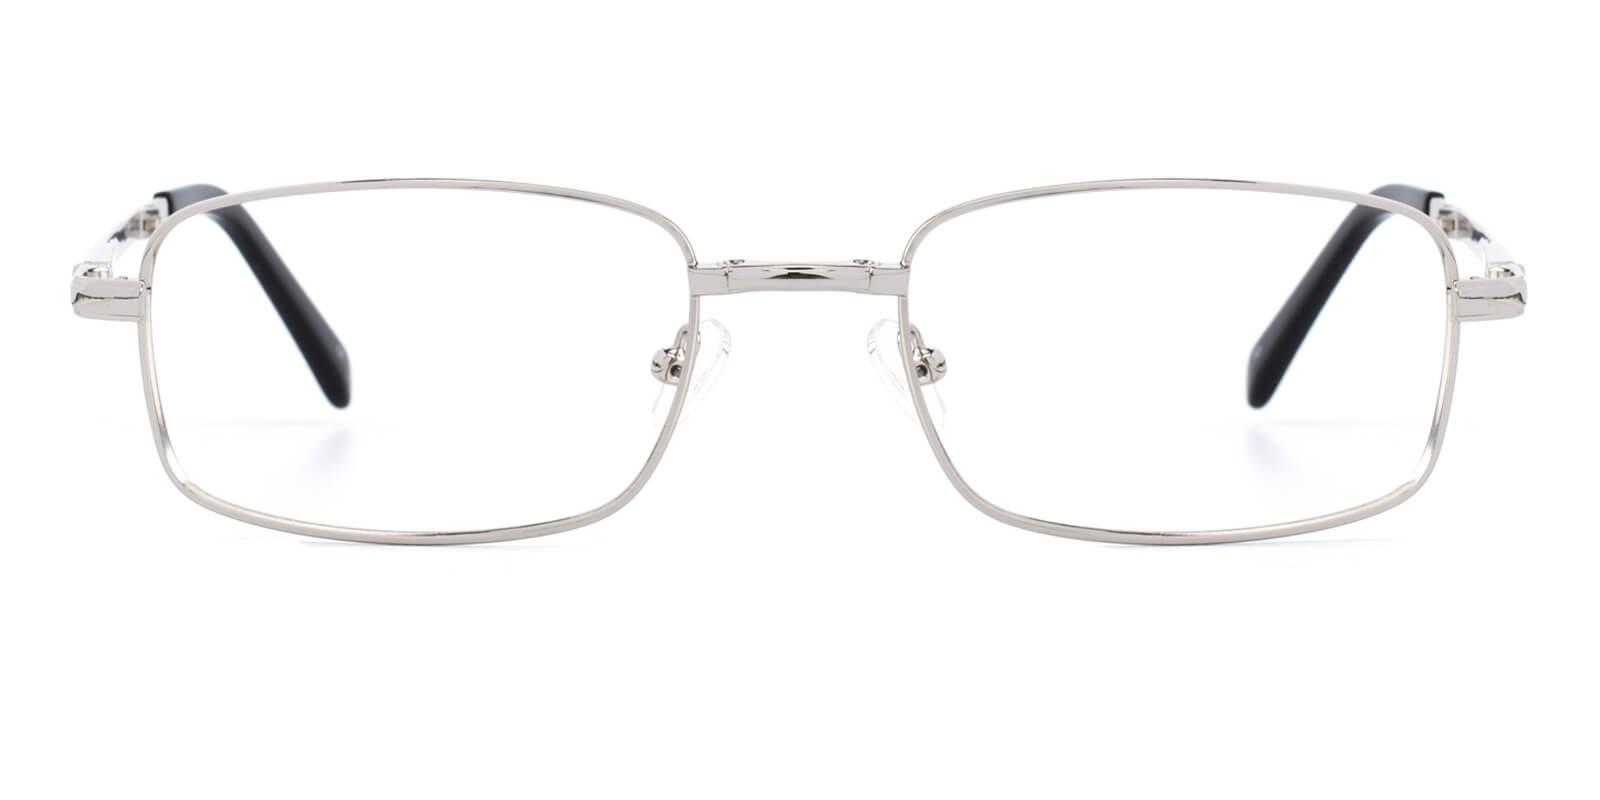 Norfolk-Silver-Rectangle-Metal-Eyeglasses-additional2